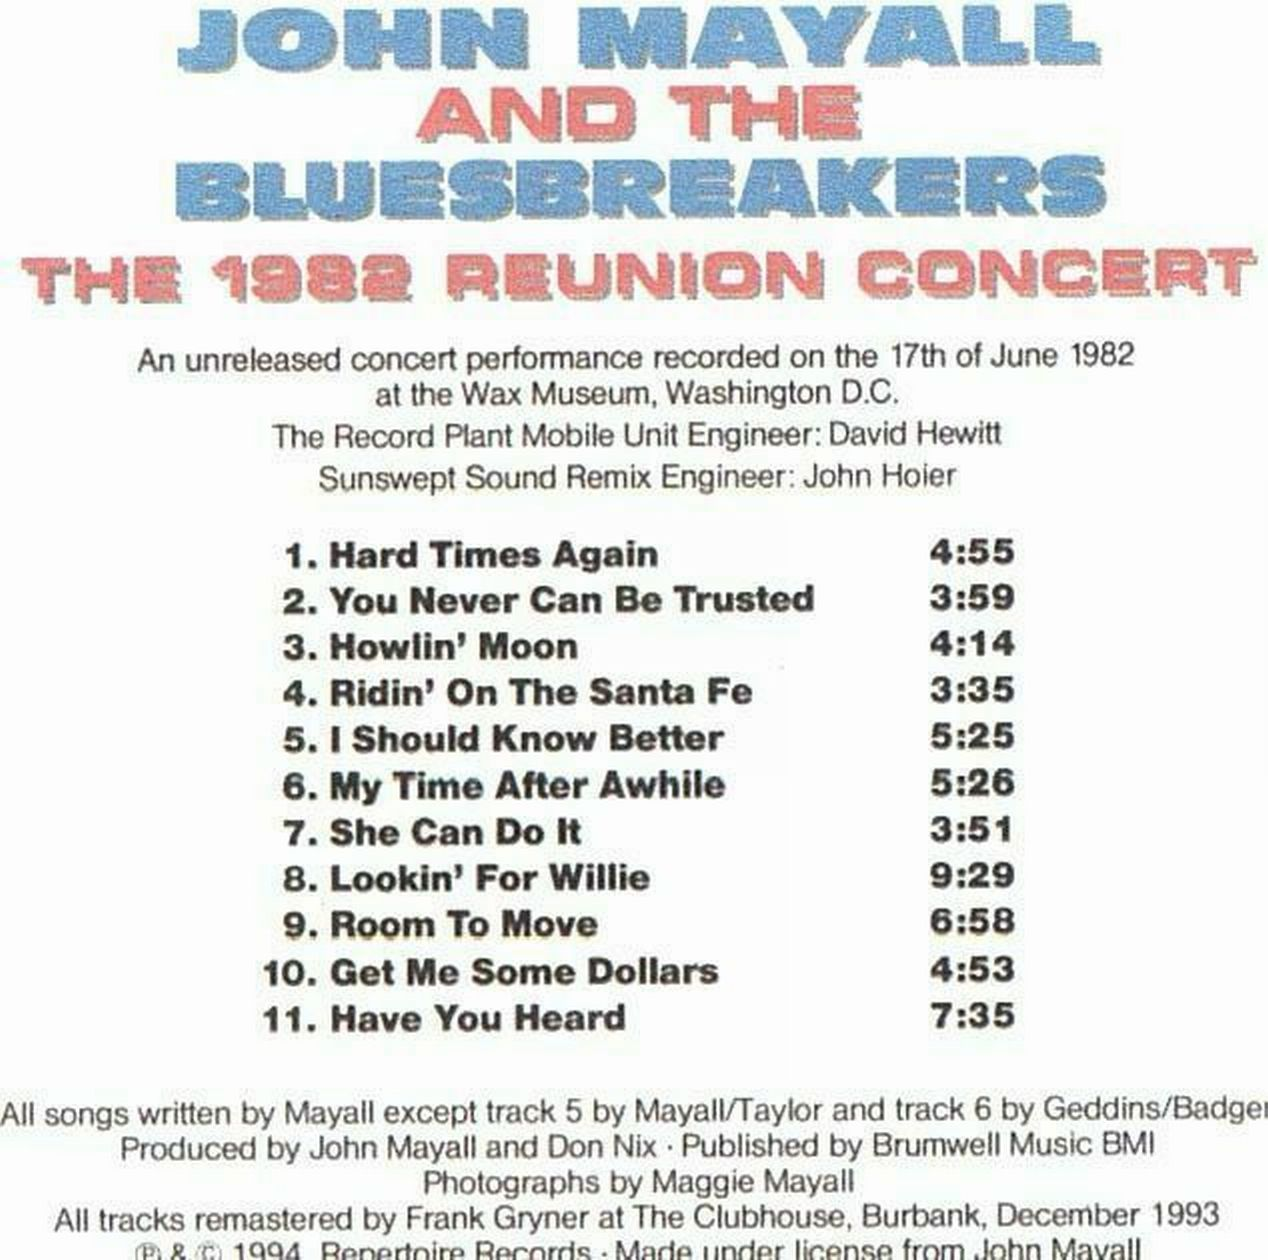 John Mayall - The 1982 Reunion Concert - Back